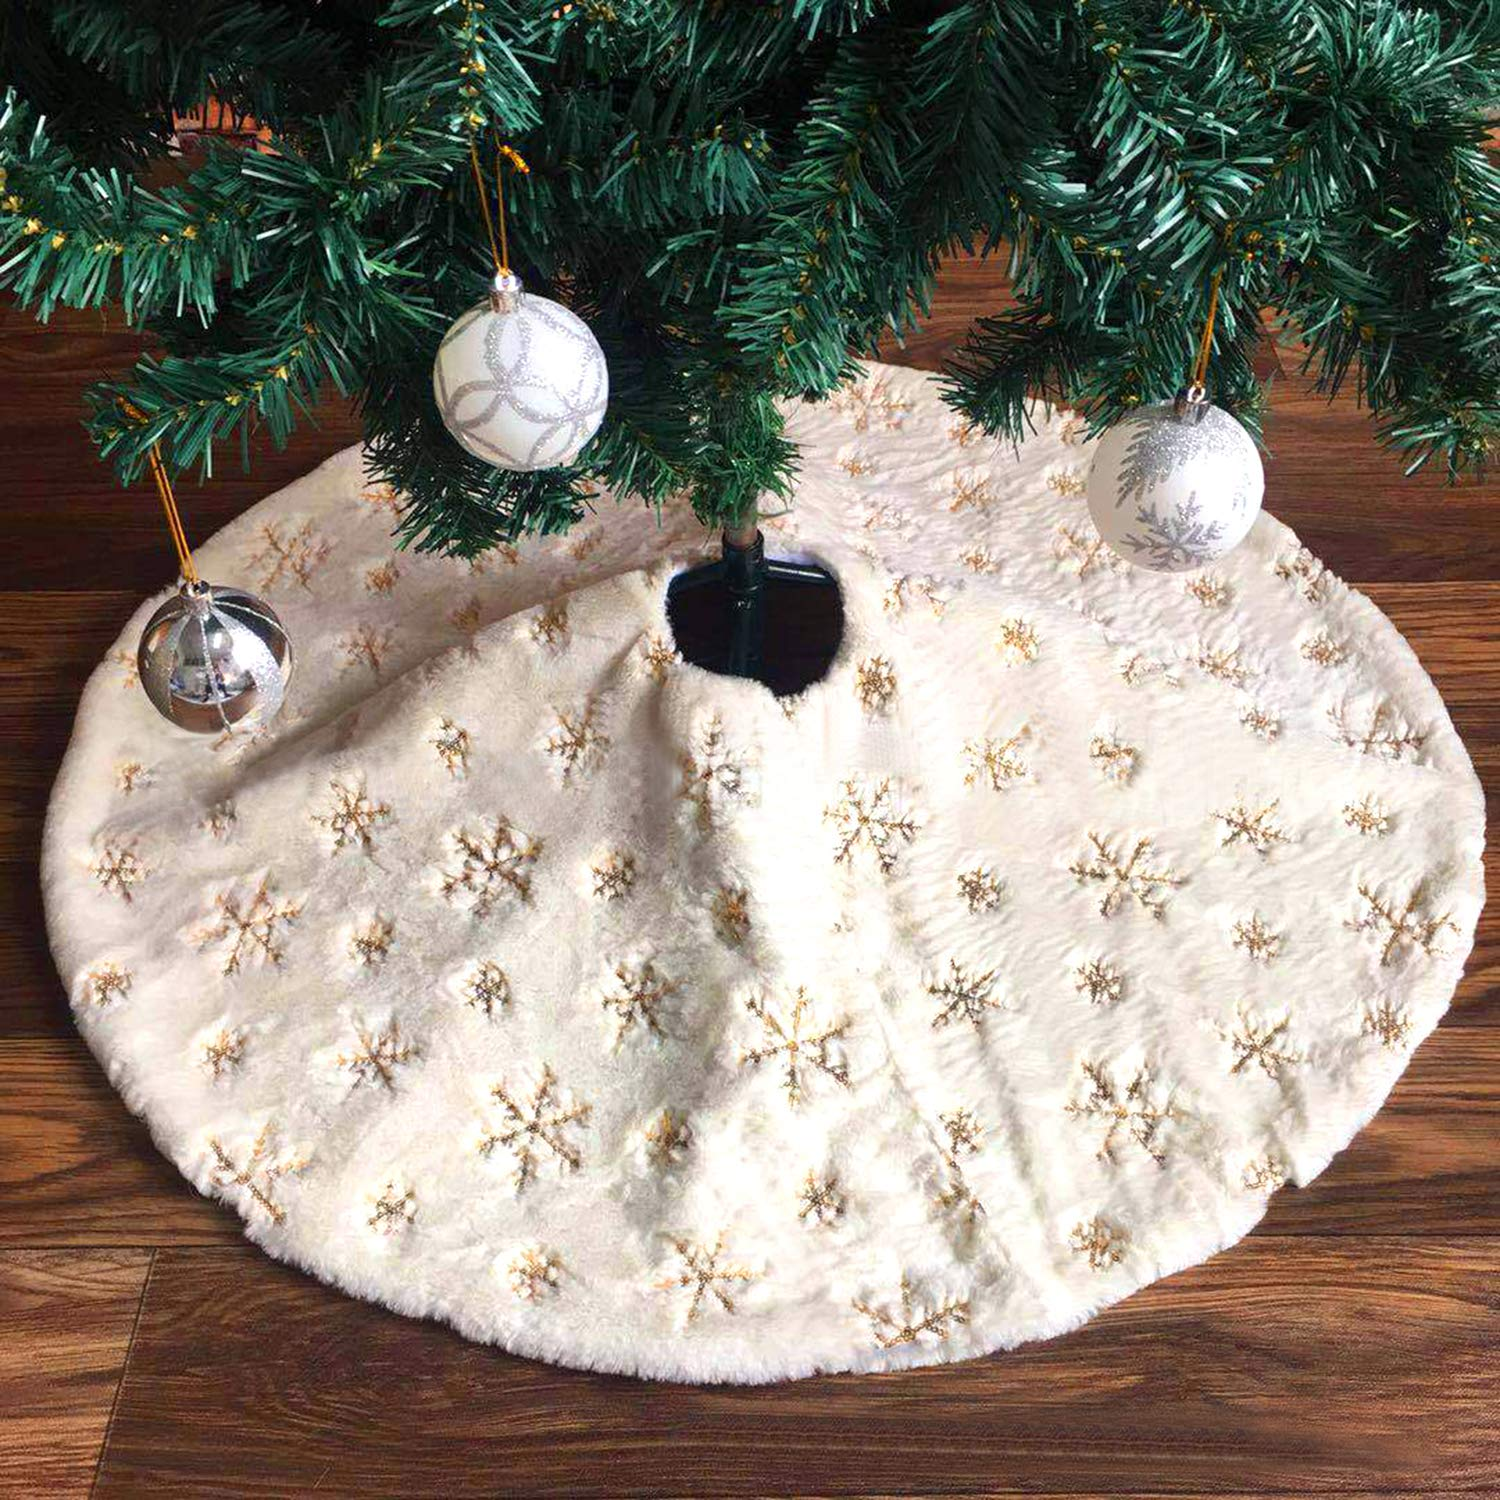 48 inches Snowflake White Luxury Faux Fur Tree Skirt for Christmas Ornaments Decorations Gold Snowflake Lorfancy Christmas Tree Skirt